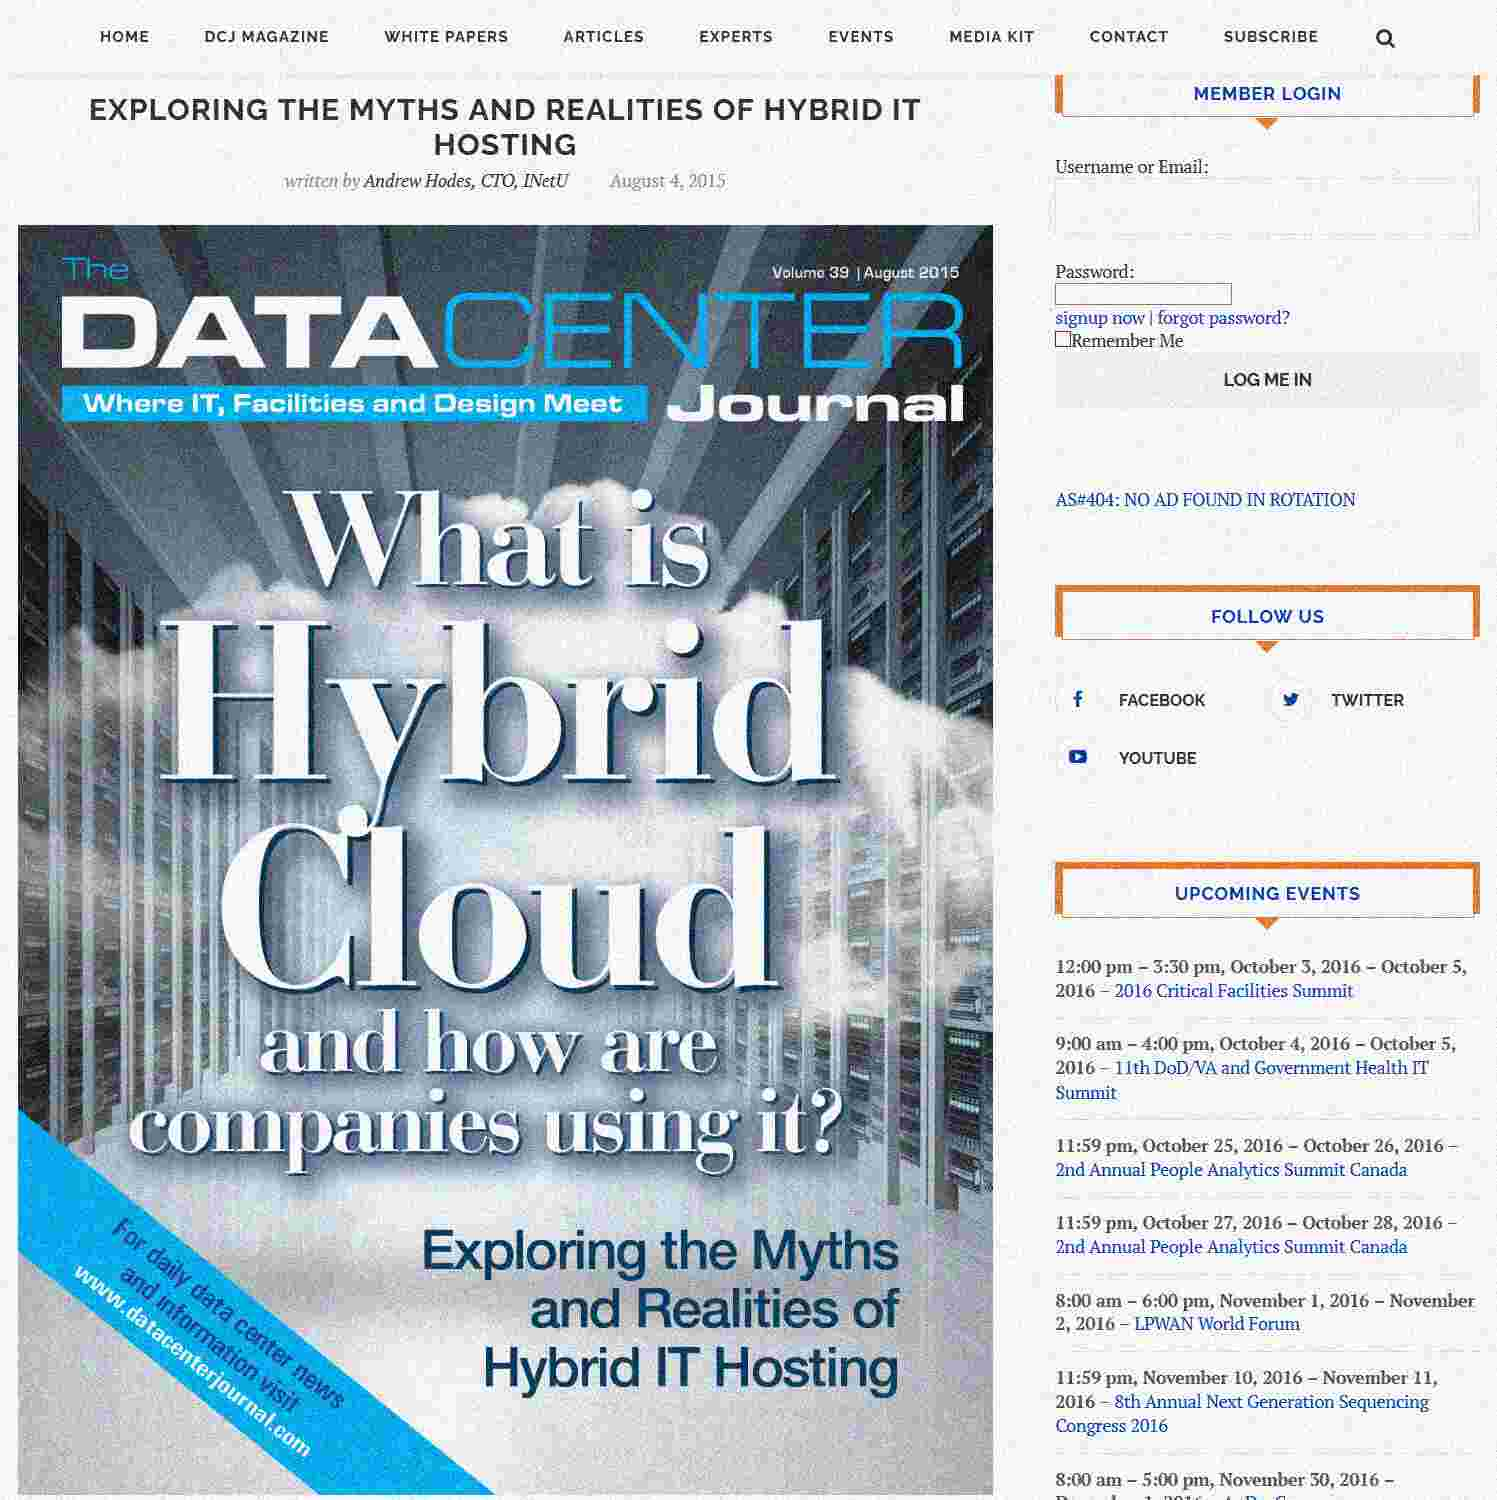 Illustration of Exploring the Myths and Realities of Hybrid IT Hosting